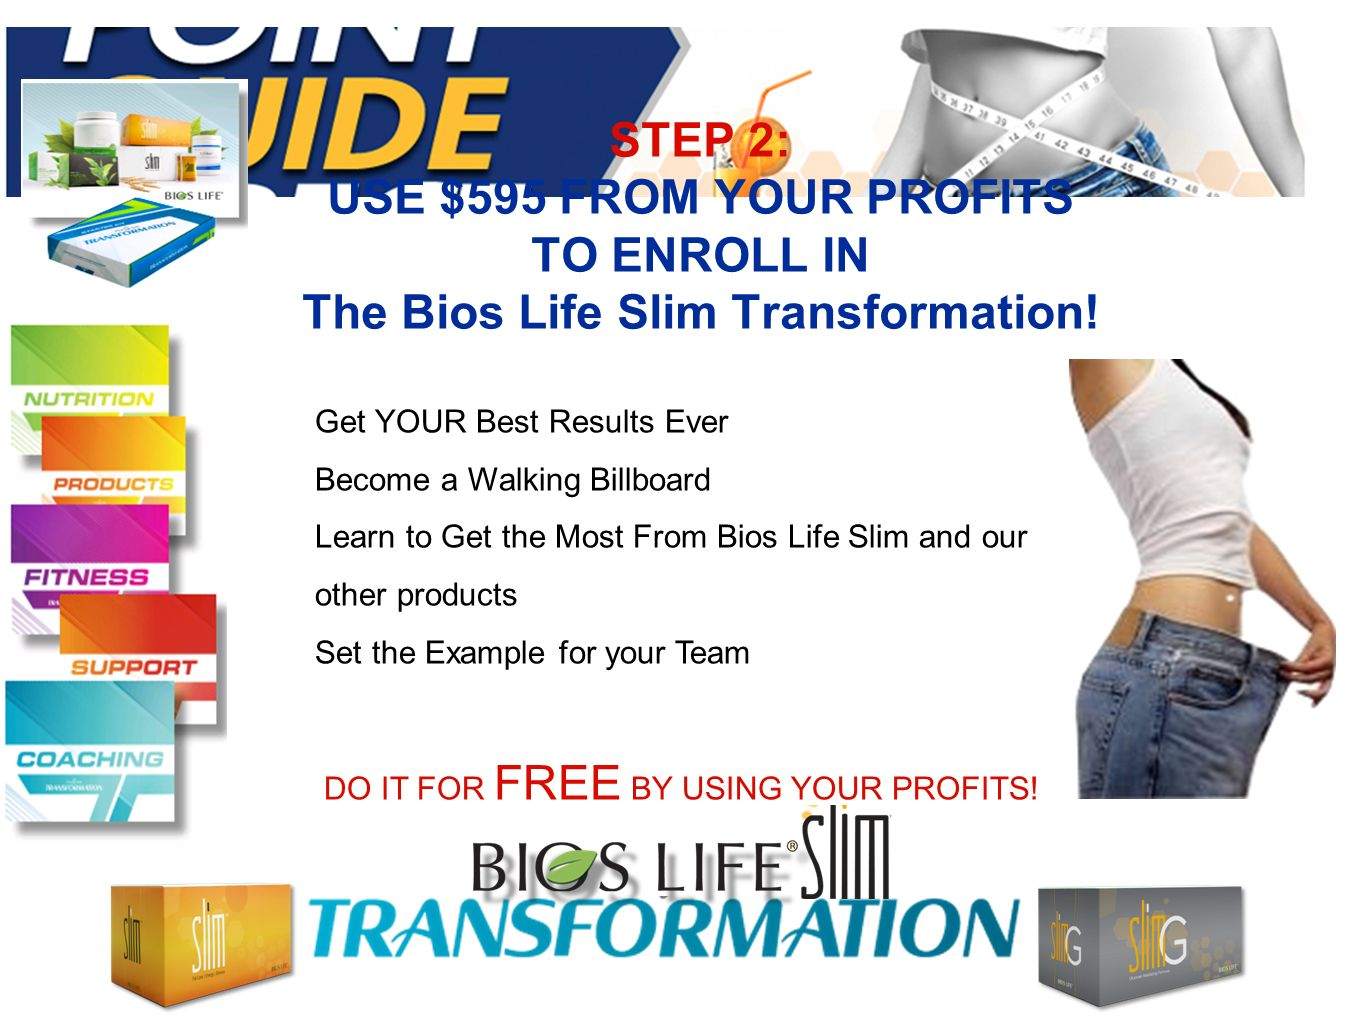 STEP 2: USE $595 FROM YOUR PROFITS TO ENROLL IN The Bios Life Slim Transformation.